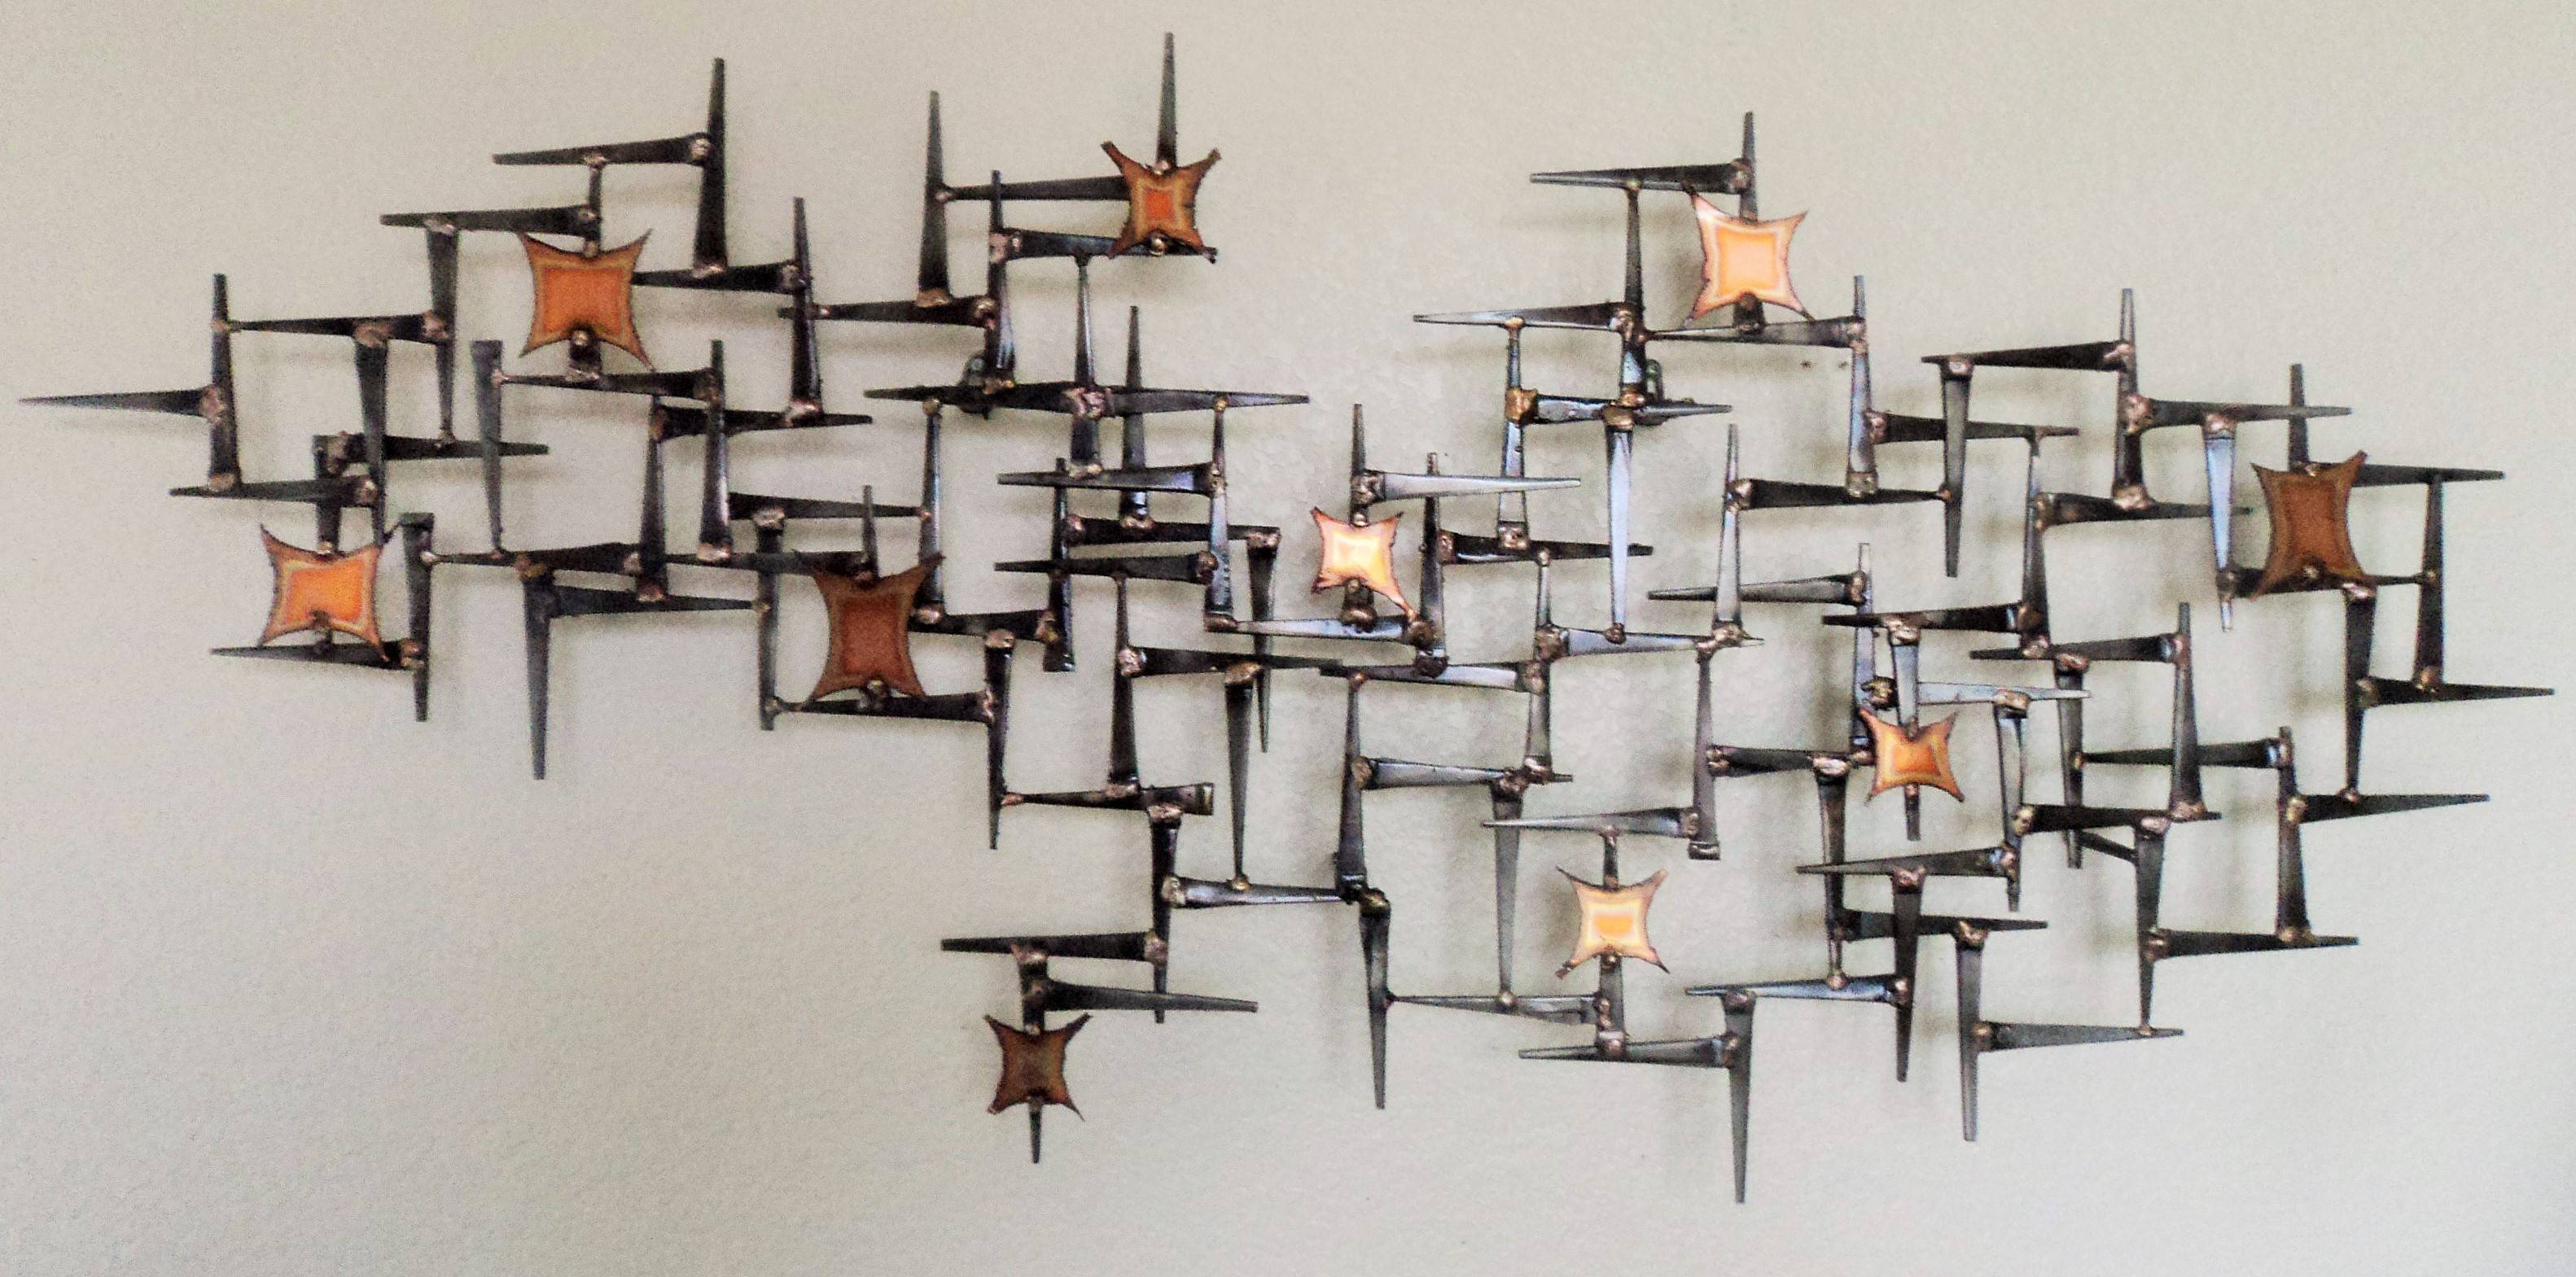 Mid Century Modern Wall Art Sculpture | Best Wall Art 2018 With Regard To Most Recently Released Mid Century Modern Metal Wall Art (View 18 of 20)